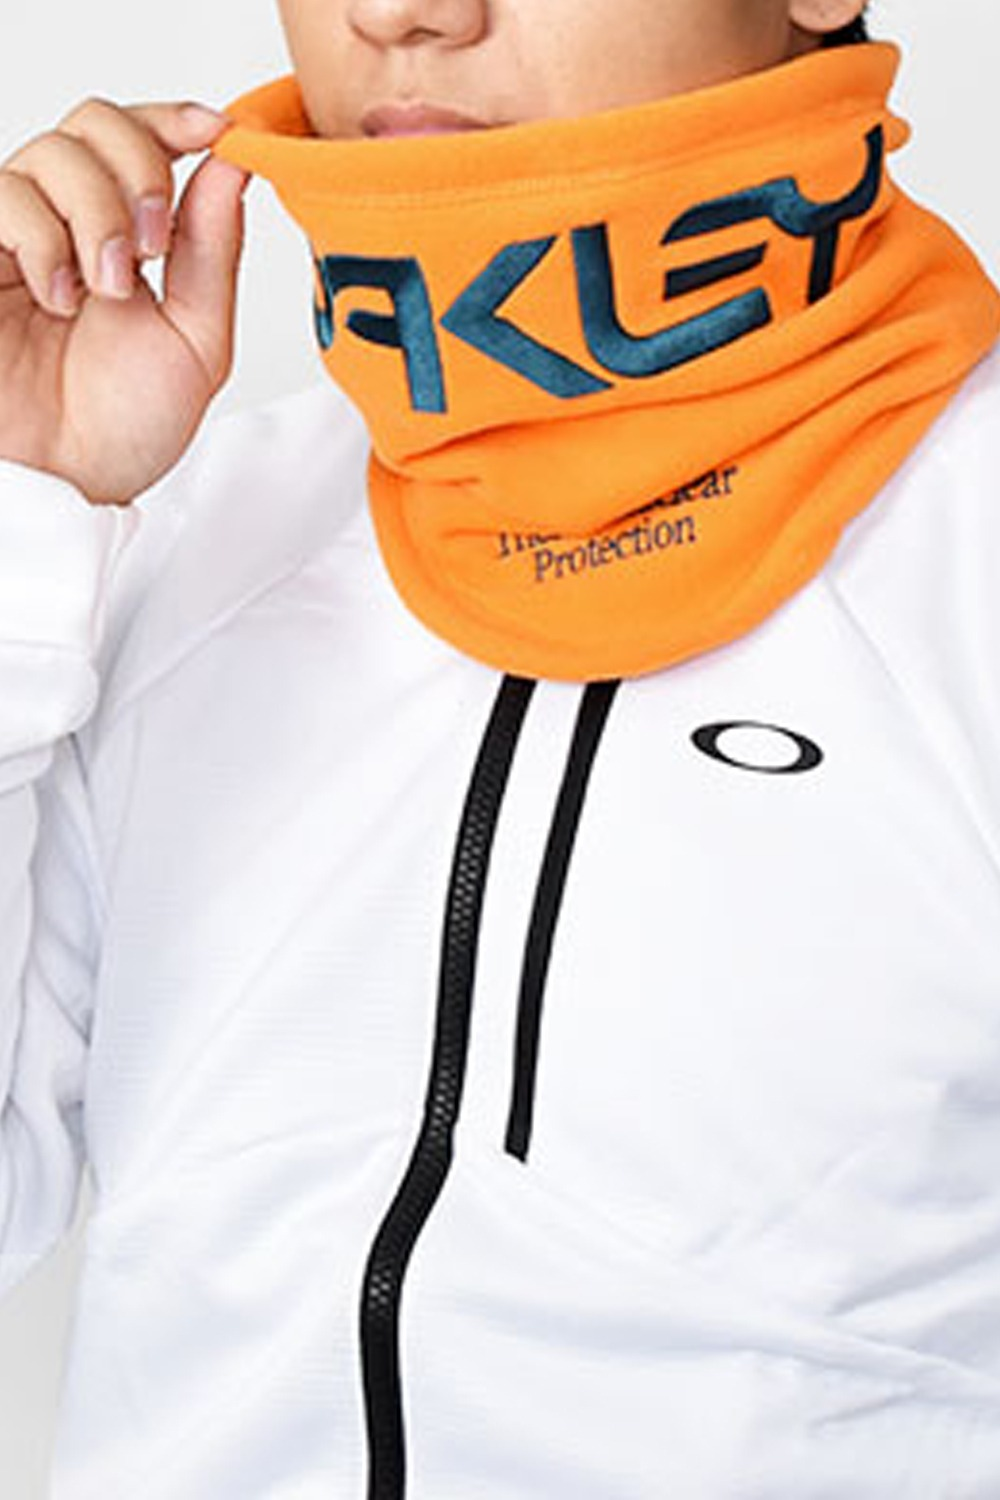 2021 오클리 TNP 넥게이터 2021 OAKLEY TNP NECK GAITER_BOLD ORANGE(FOS900342-7BR)_남녀공용/넥워머_DLO1005OR